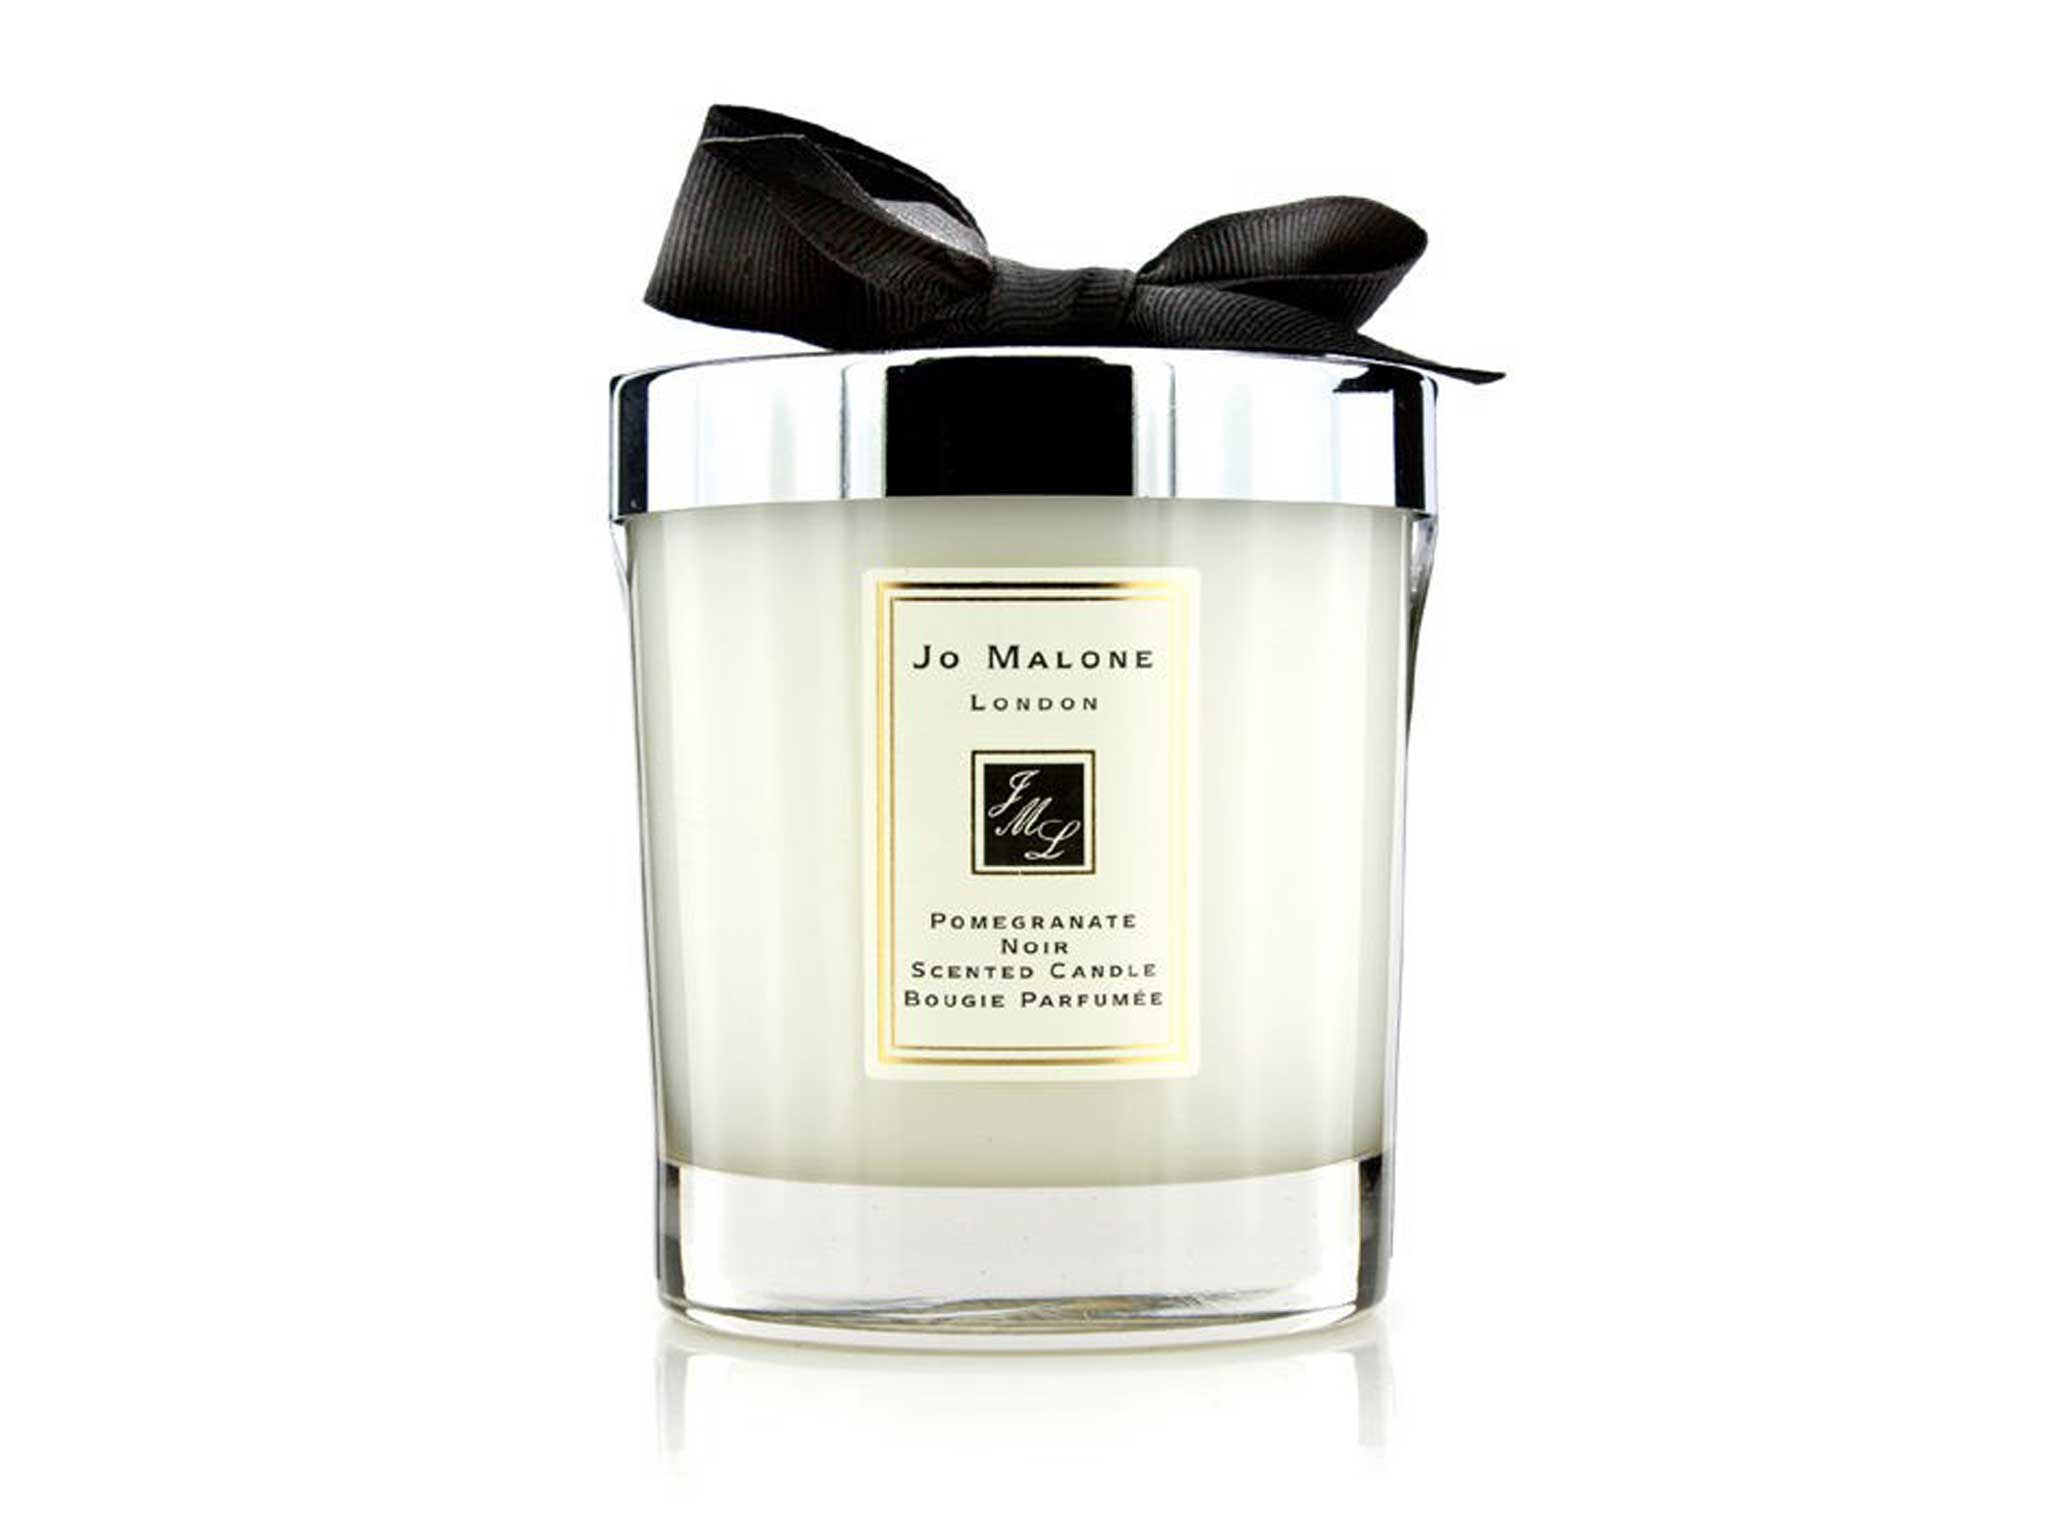 Jo Malone London - Pomegranate Noir Travel Candle